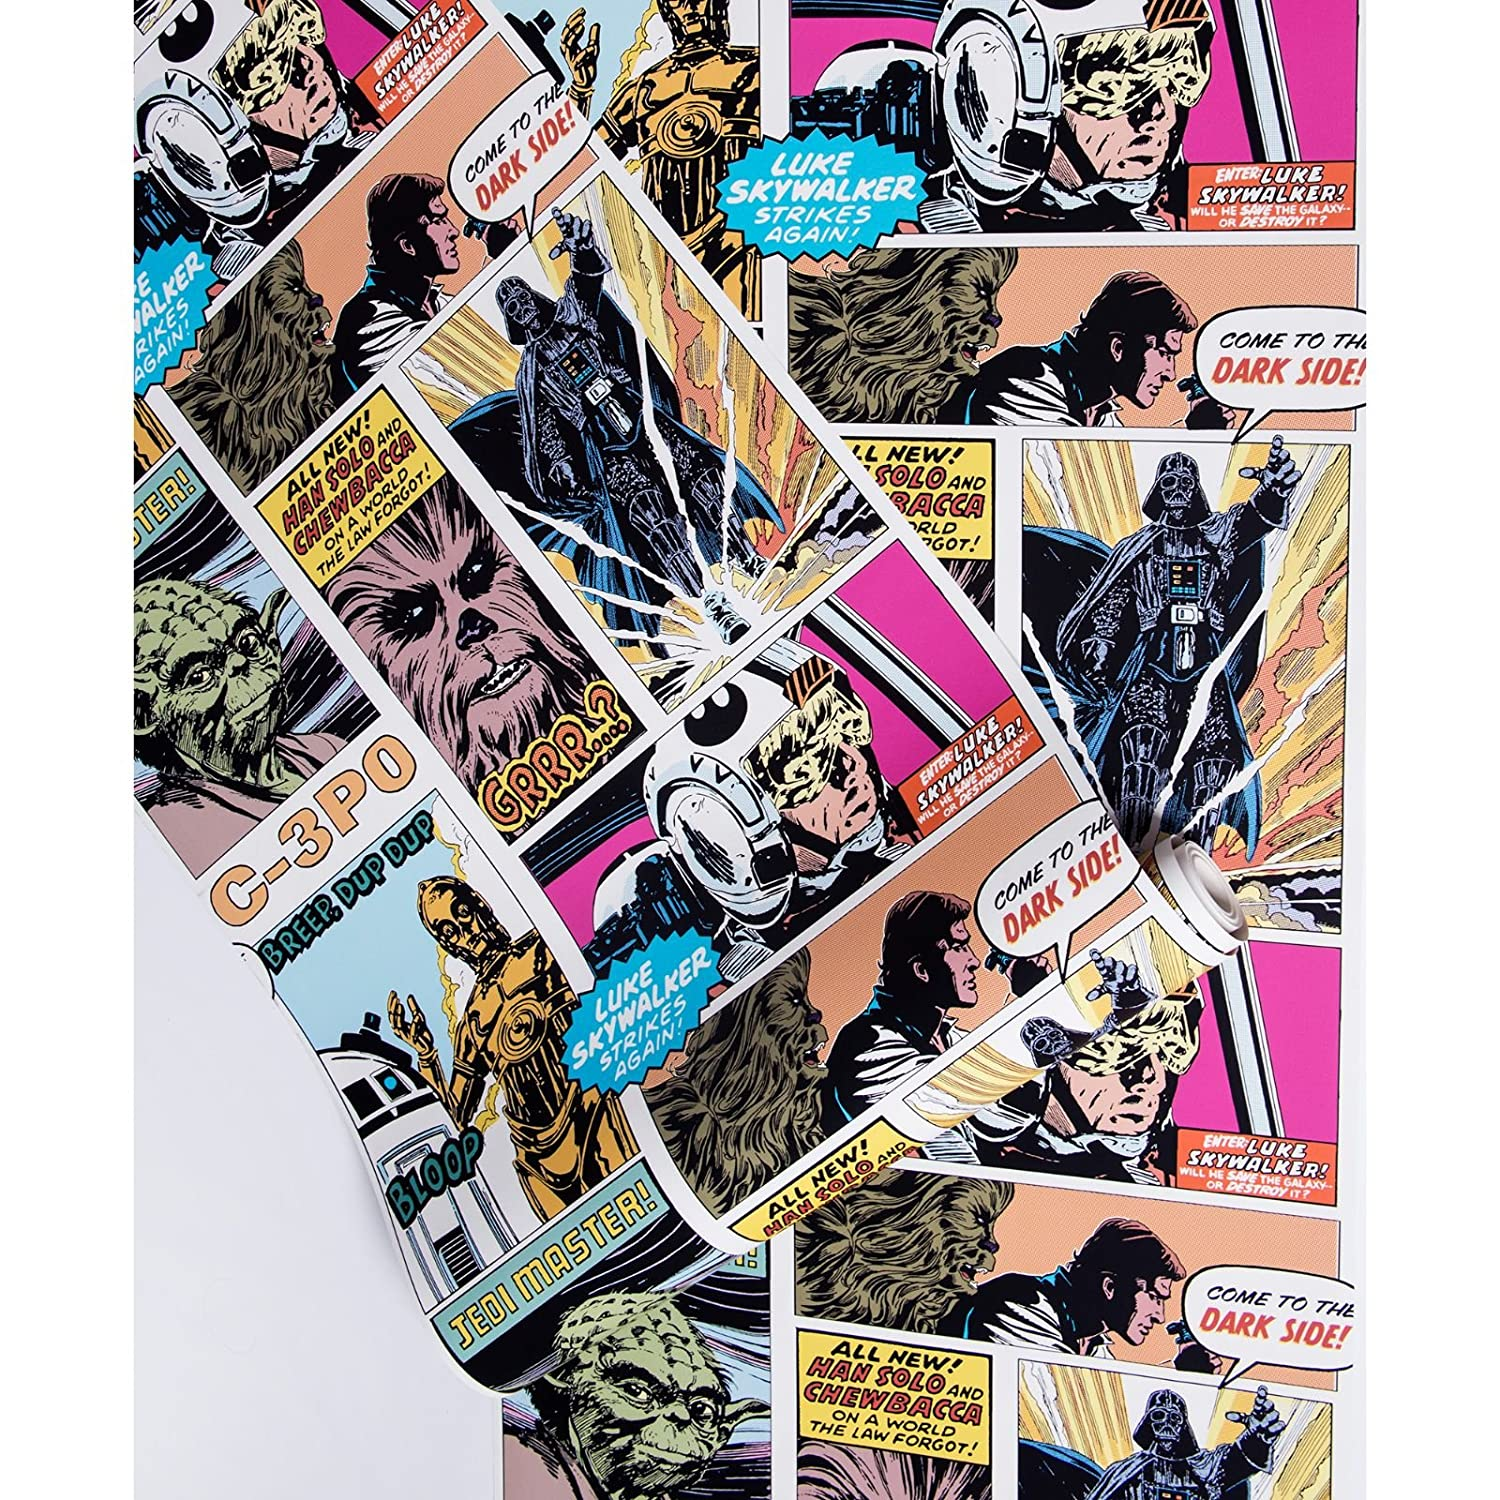 Star Wars Pop Art Collage Wallpaper Amazoncouk DIY Tools